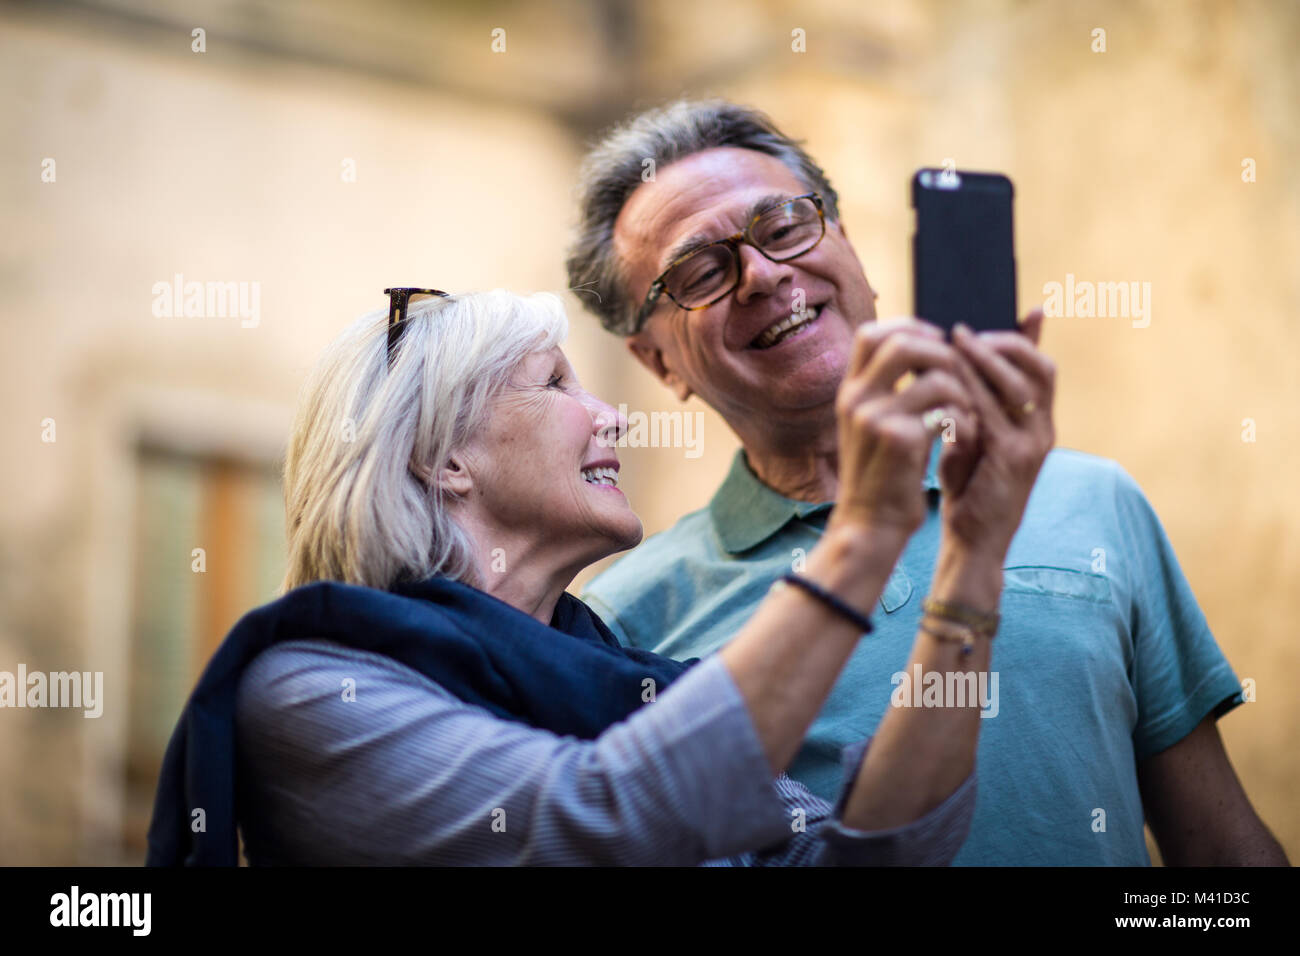 Couple en vacances en prenant un selfies Photo Stock